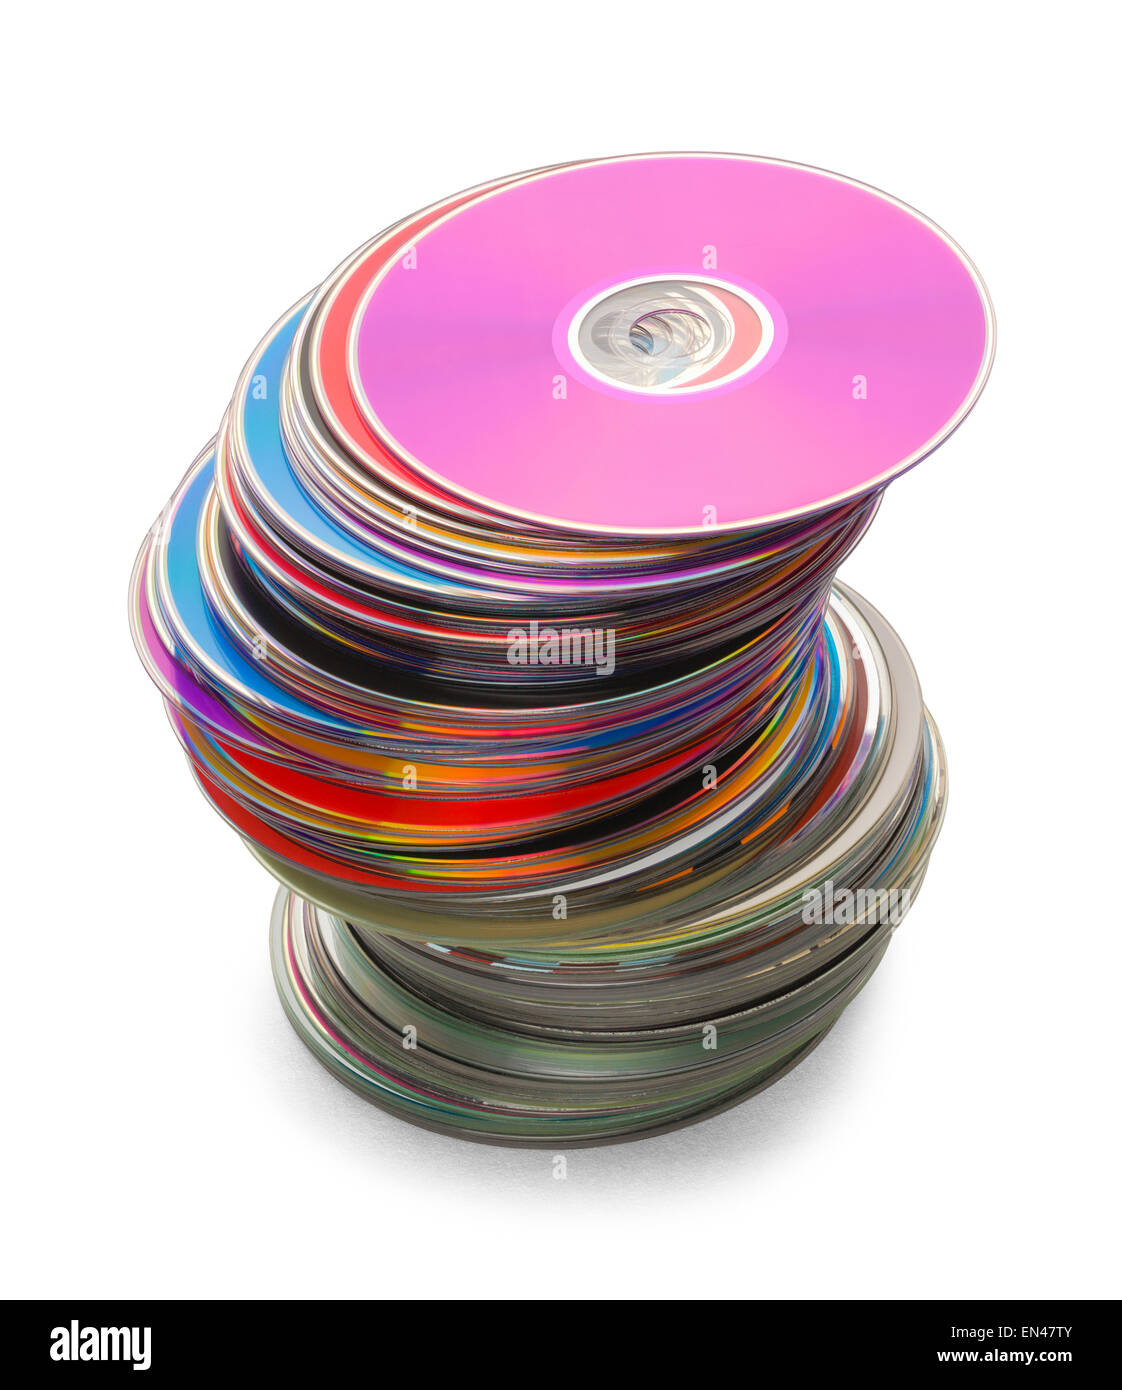 Computer Discs in a Large Leaning Stack Isolated on a White Background. Stock Photo